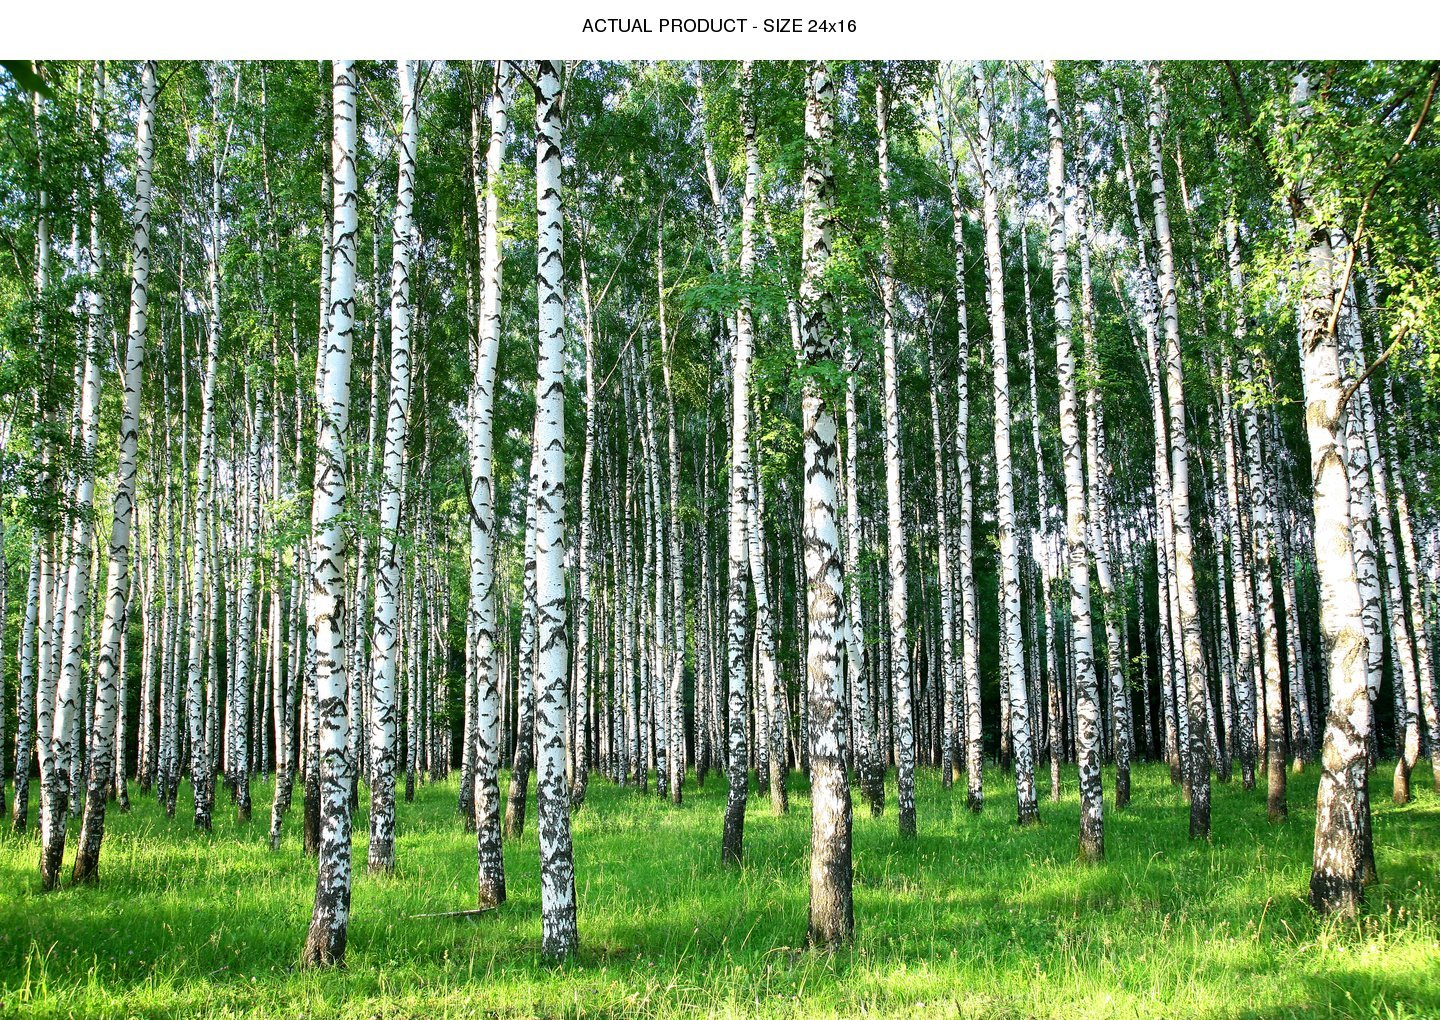 Windowpix 36x36 Inch Decorative Static Cling Window Film Sunlit Forest Trees Printed on Clear for Window Glass Panels. UV Protection, Energy Saving. by Windowpix (Image #2)